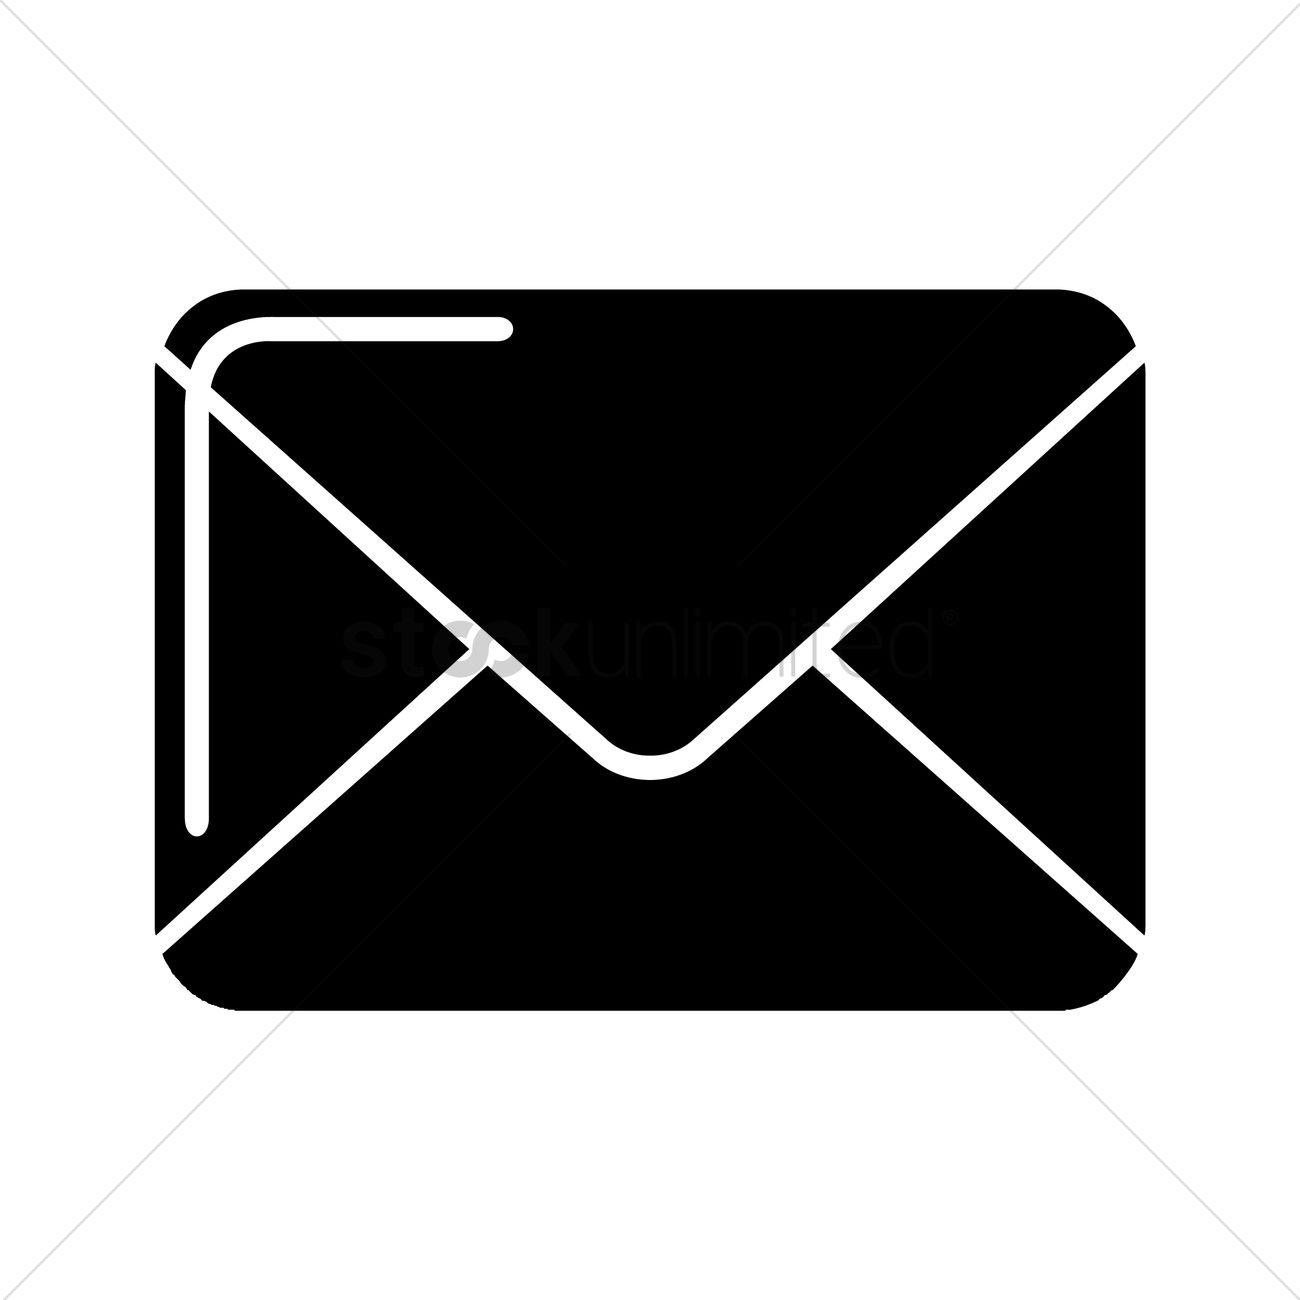 email icon vector image 2031568 stockunlimited rh stockunlimited com email icon vector ai email icon vector free